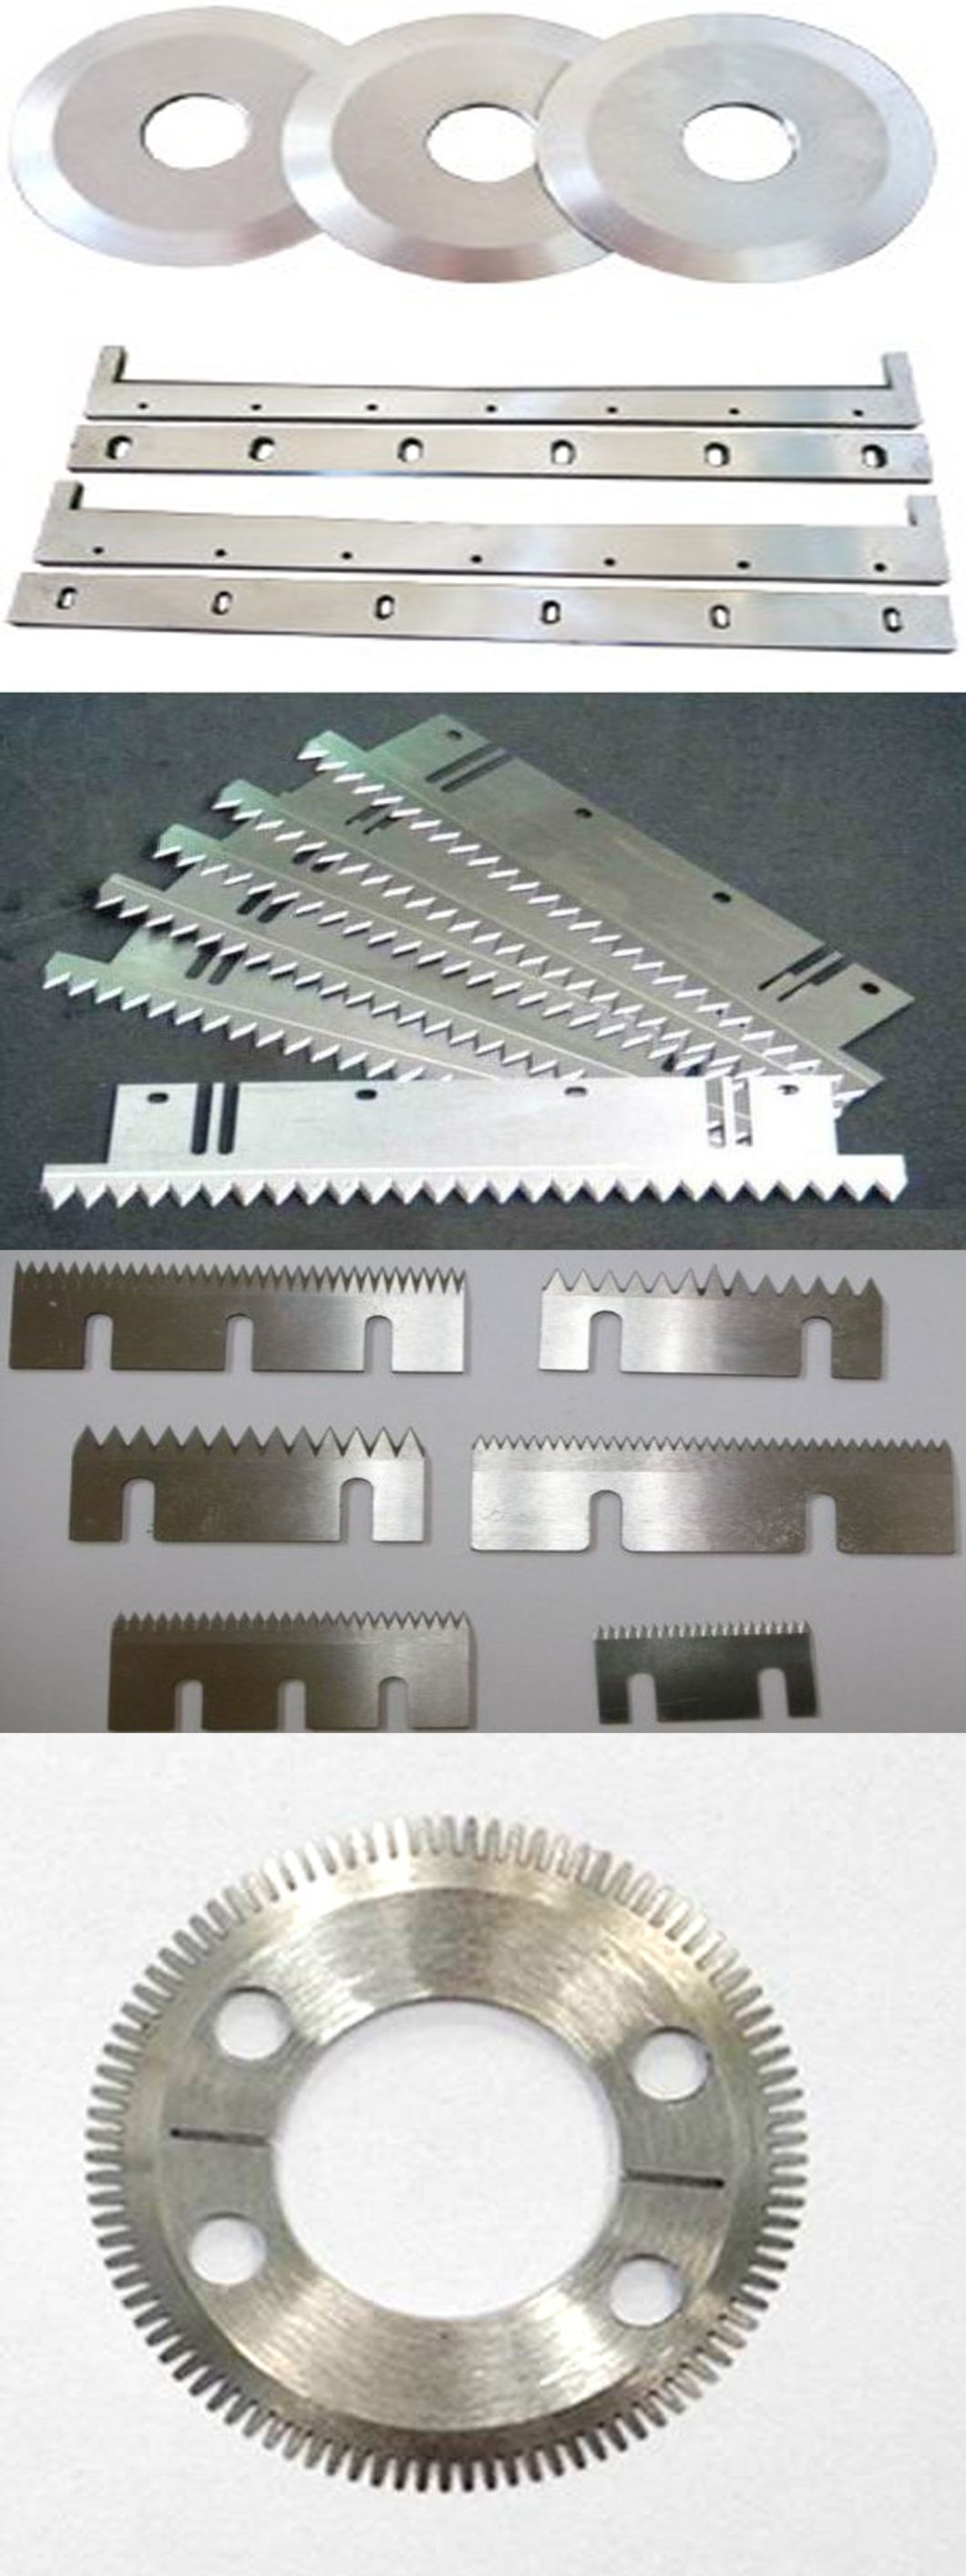 Bag Packing Machinery Blades for Cutting Carton